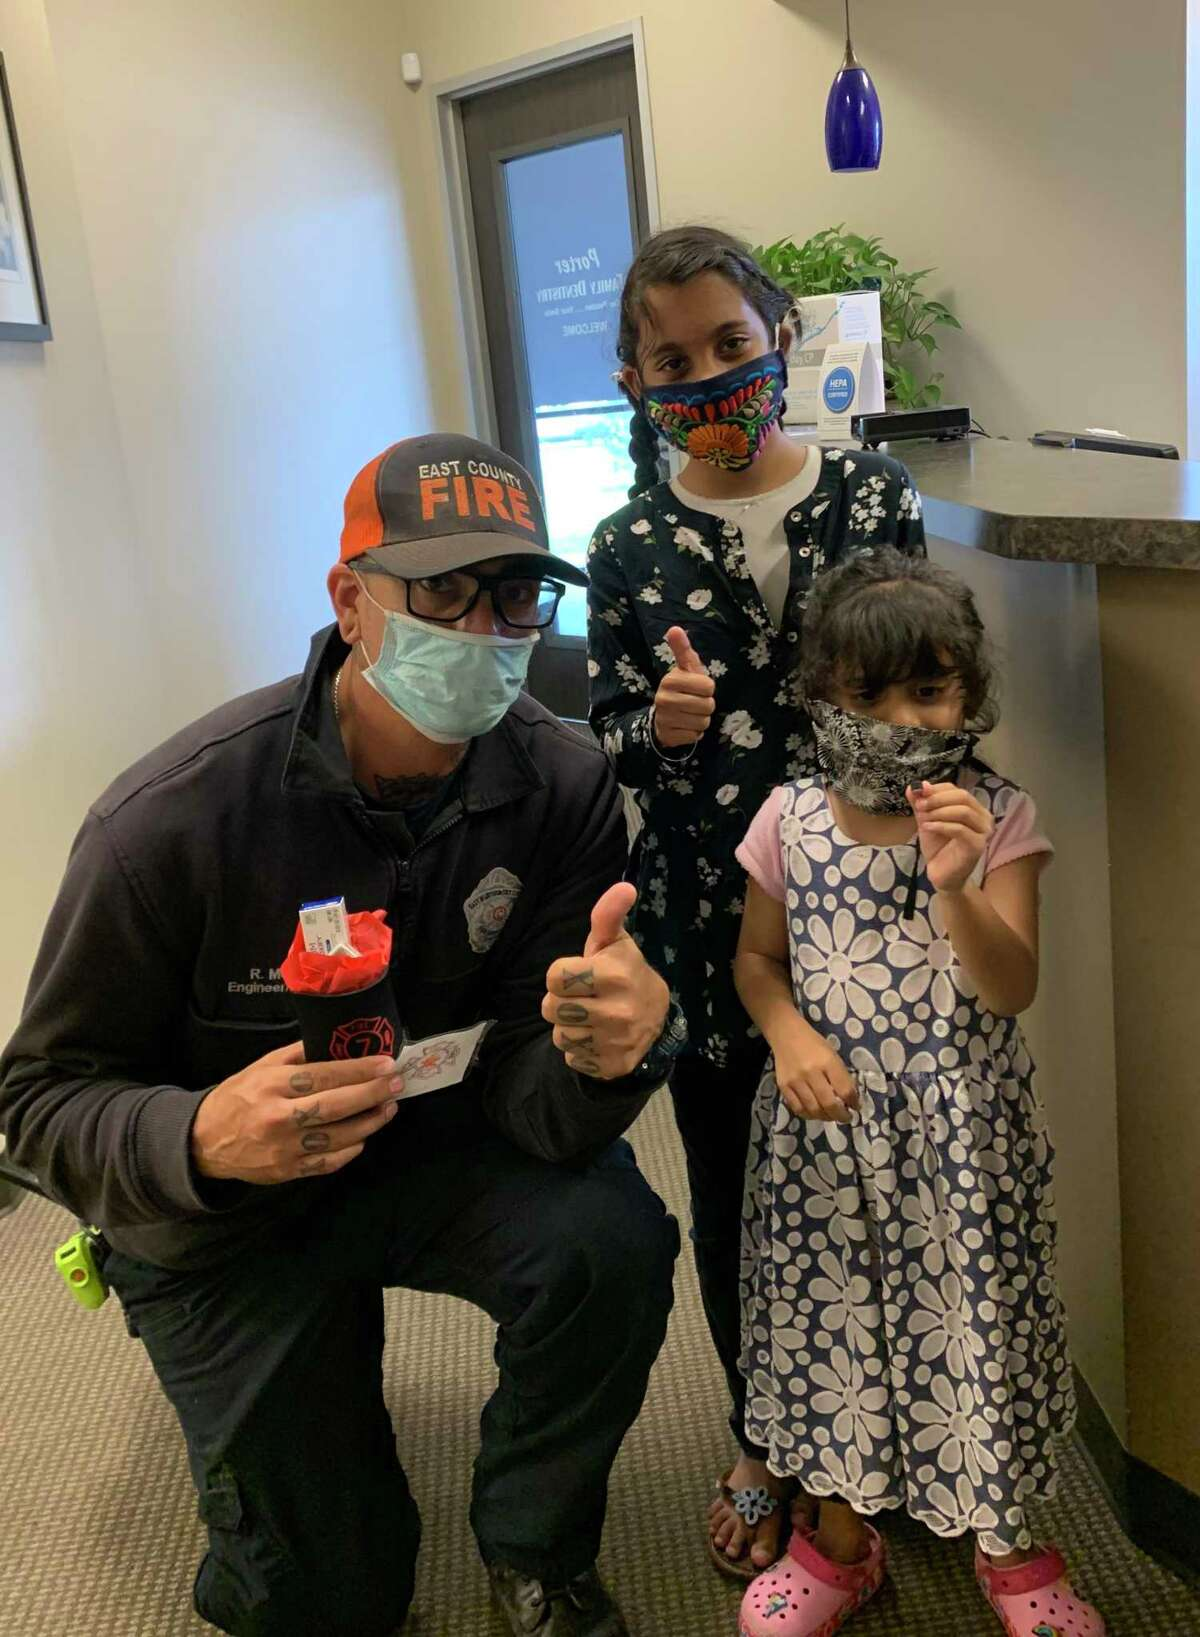 Recently, Porter Family Dentistry began offering free oral cancer screenings for firefighters in the county as a way to give back. The dental office plans on making it an annual tradition.